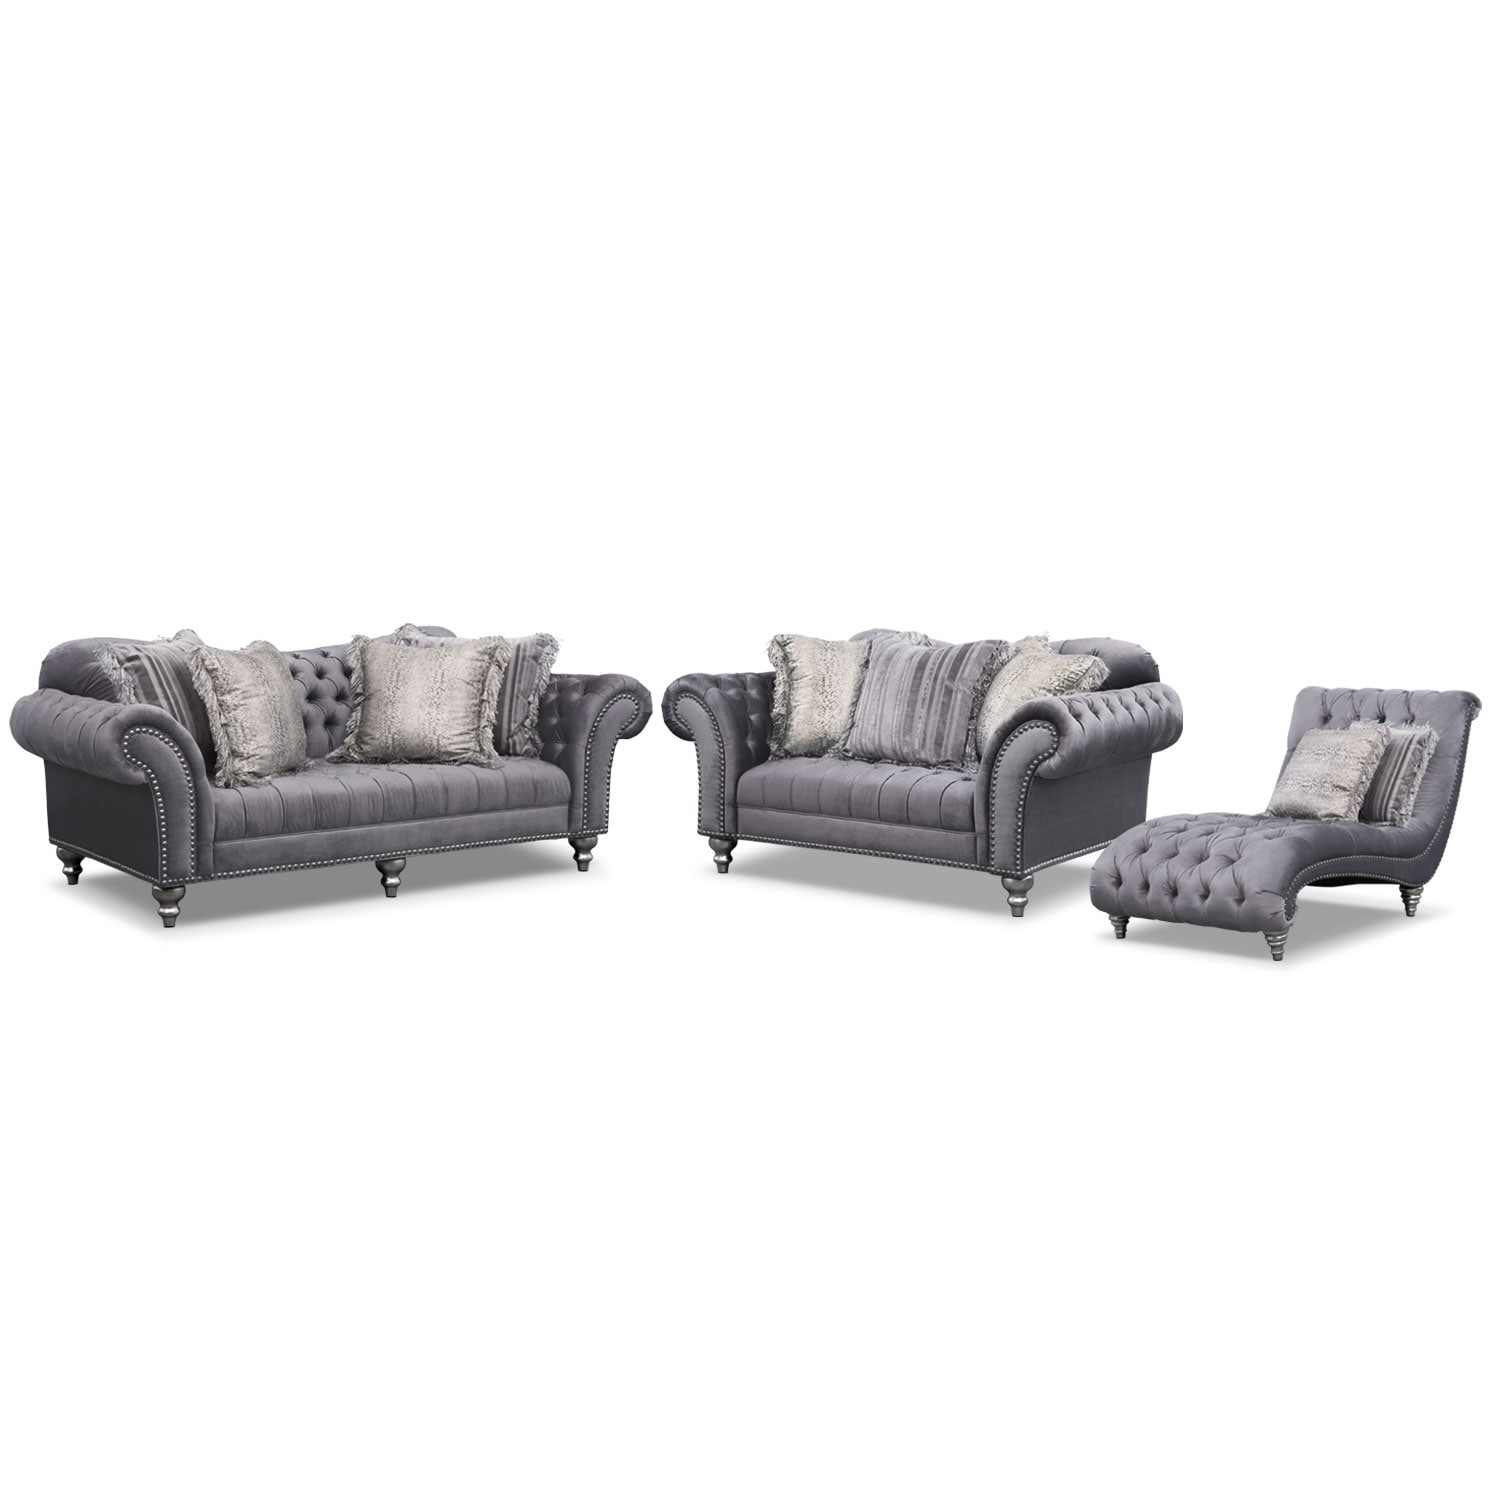 Value City Furniture Living Room Sets >> Brittney Sofa Value City Furniture And Mattresses